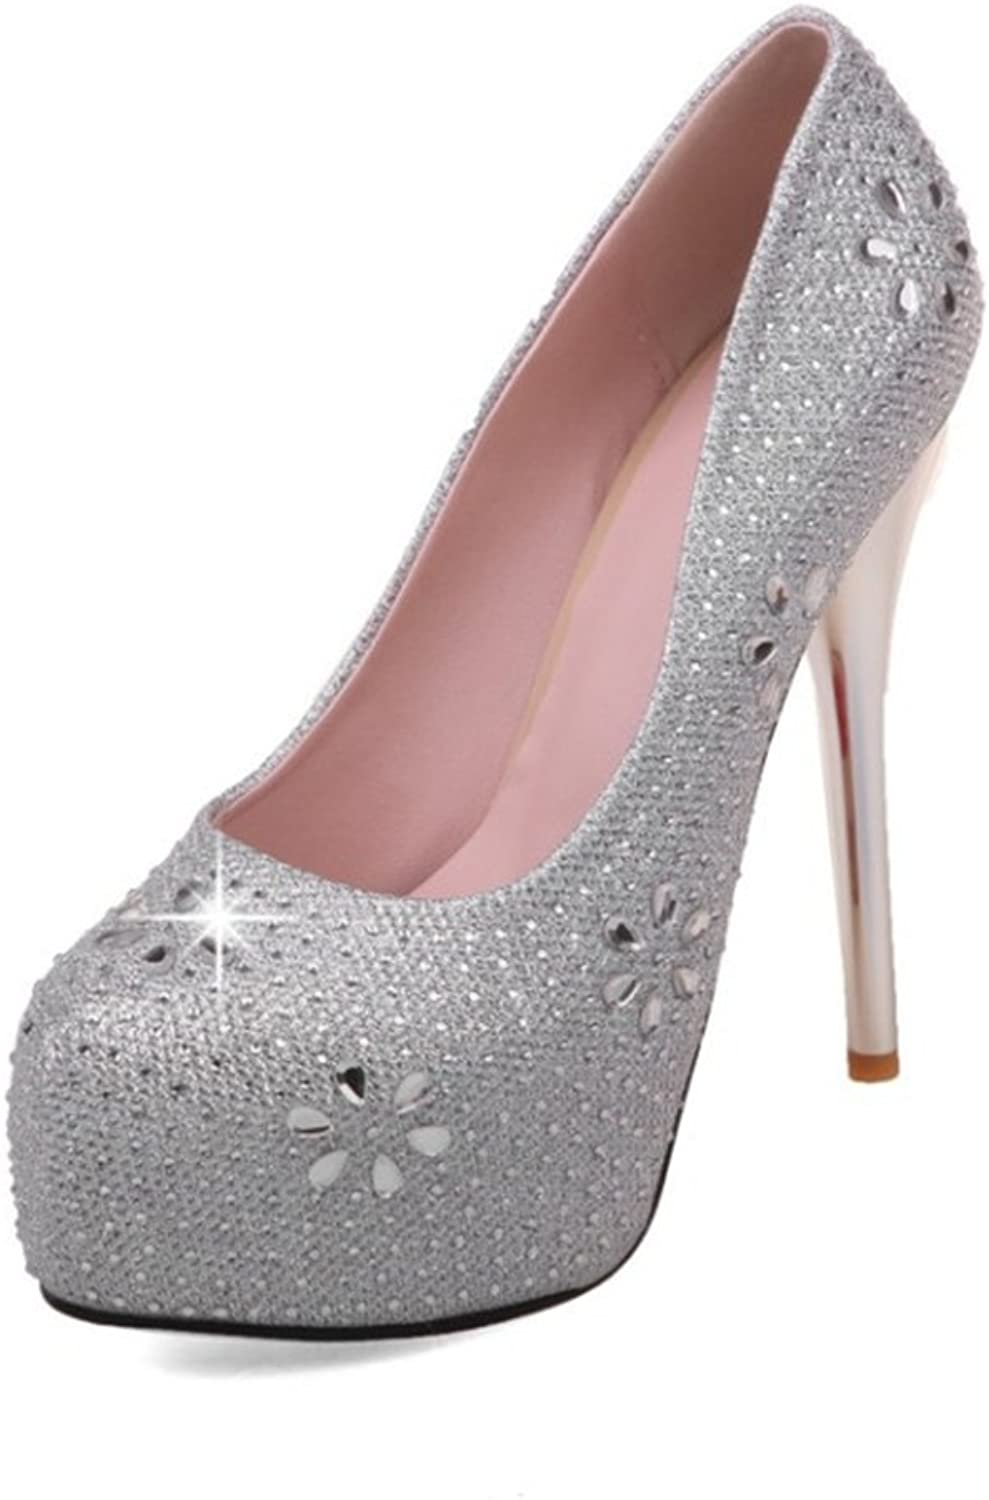 SUNNY Store Women's Satin Almond Toe Wedding Mid Heel with Rhinestone Details and Ankle Strap